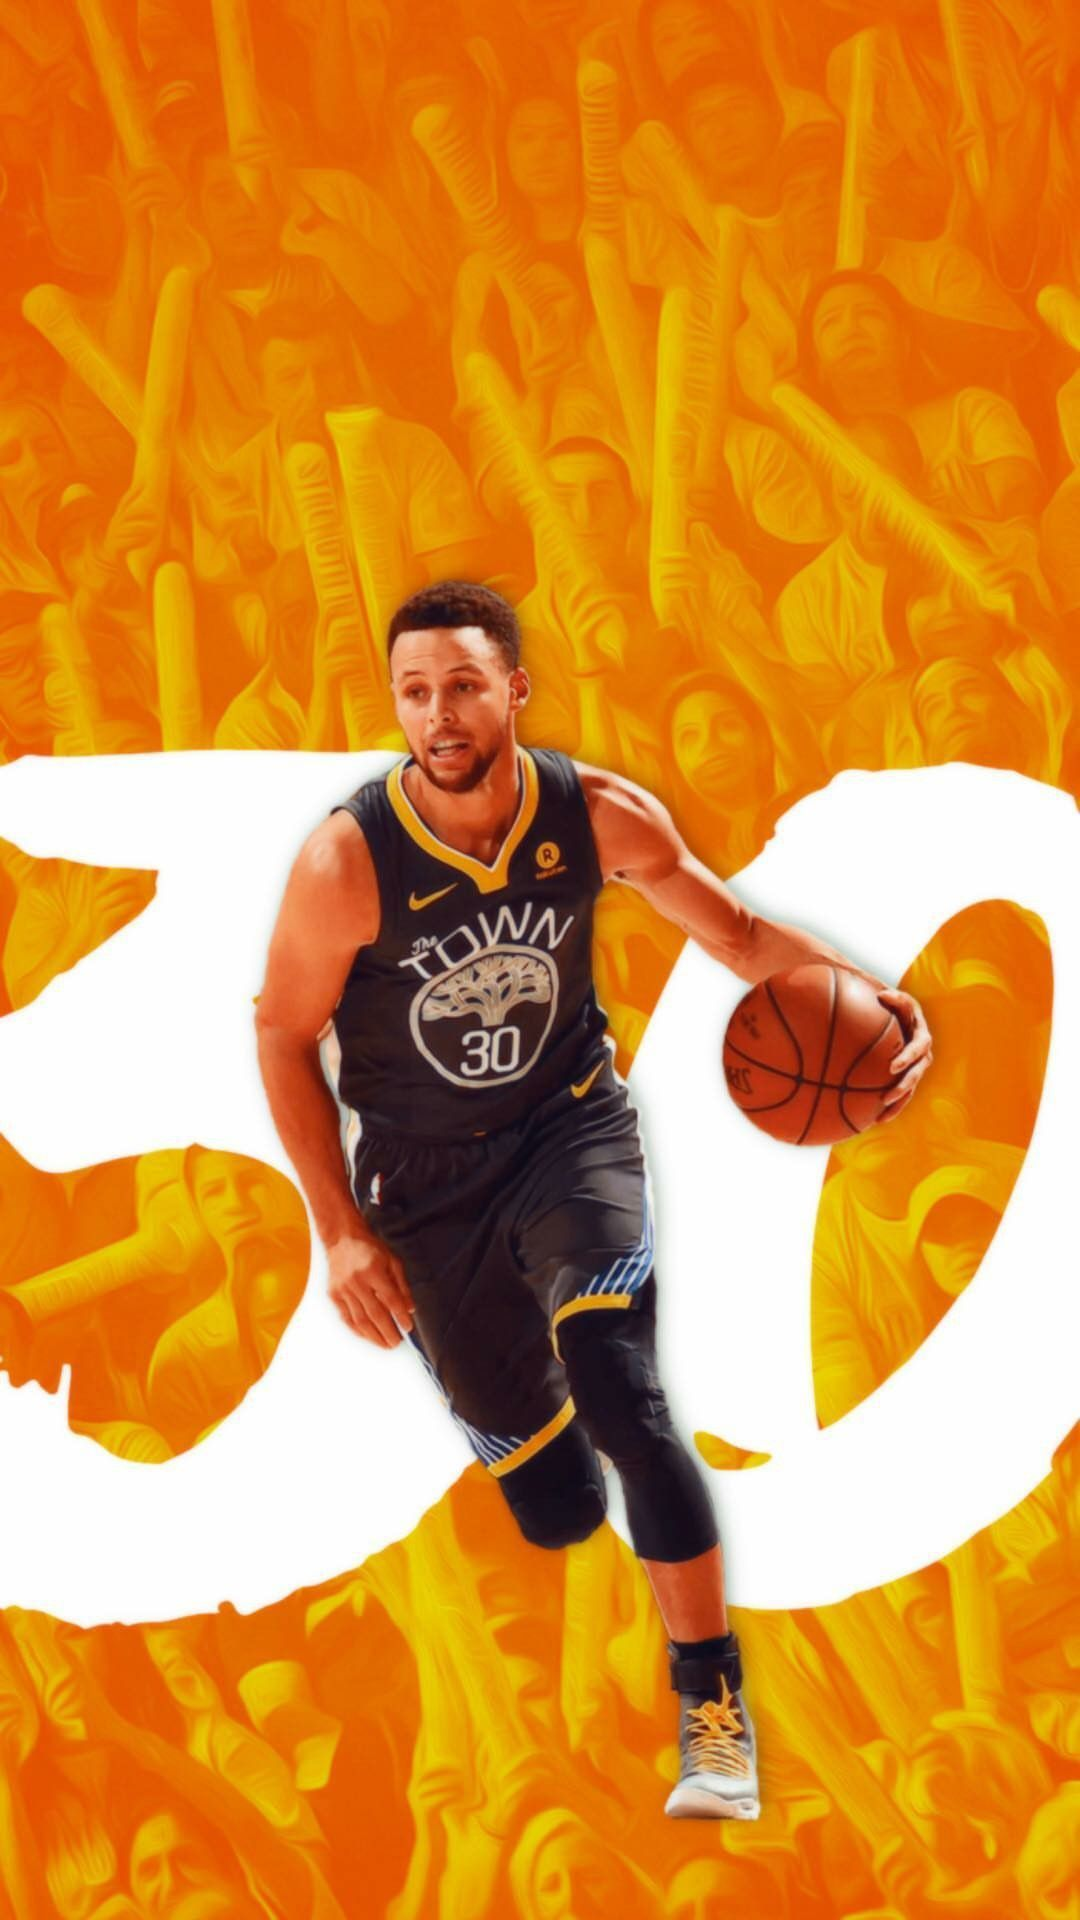 Stephen Curry Background Hupages Download Iphone Wallpapers Stephen Curry Wallpaper Curry Wallpaper Stephen Curry